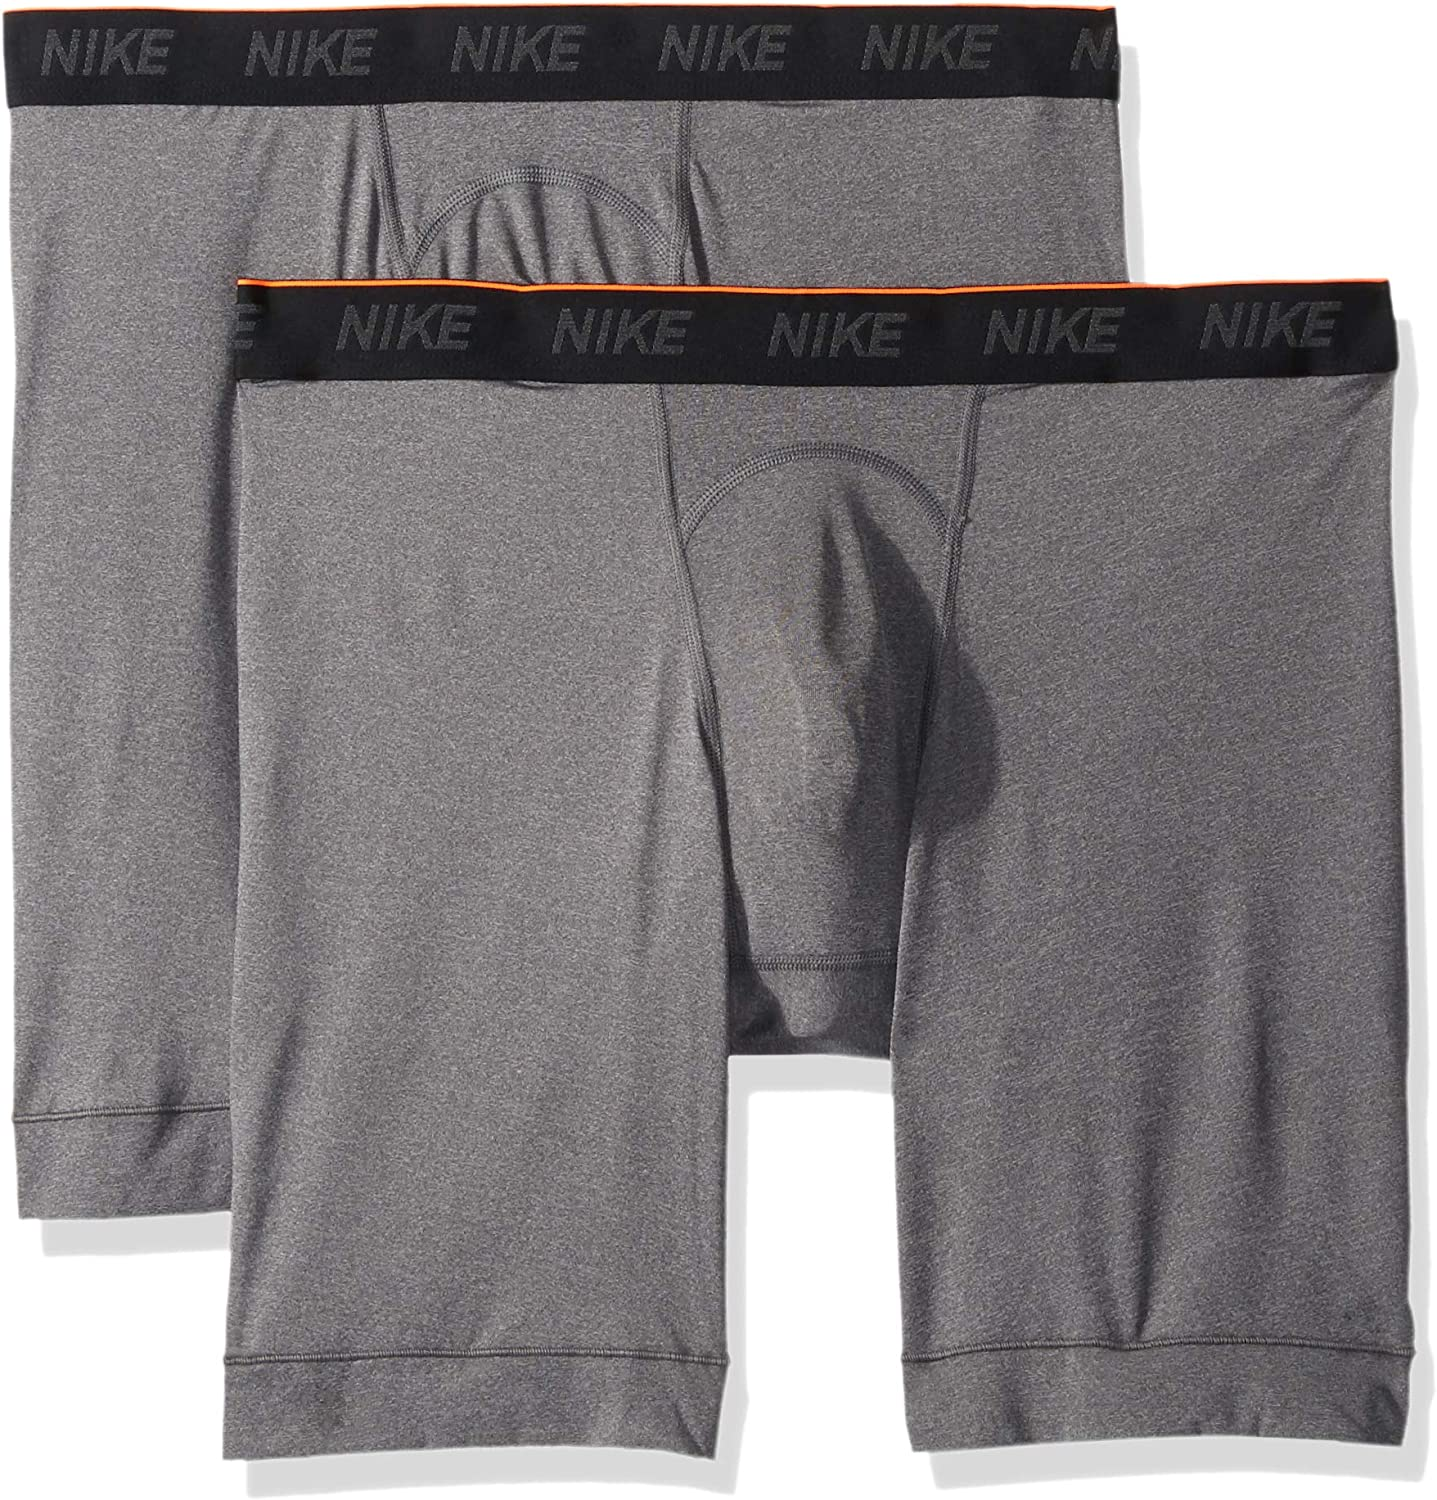 romántico Terrible Solicitud  Amazon.com: NIKE Men's Long Boxer Briefs (2 Pack): Clothing